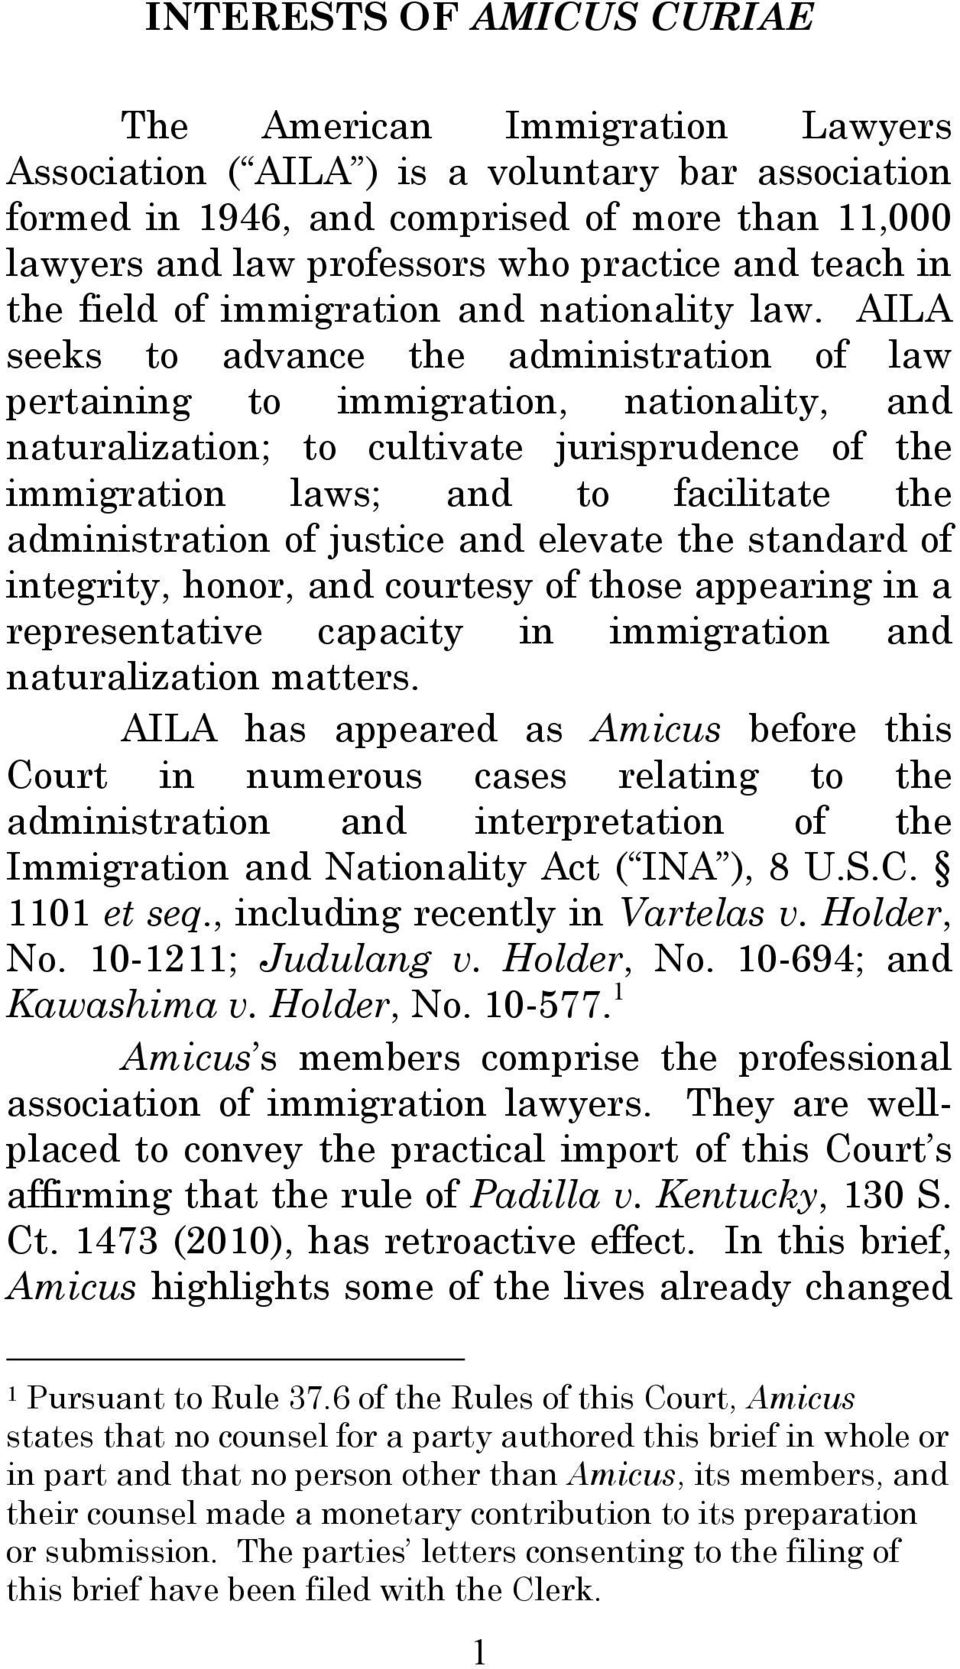 AILA seeks to advance the administration of law pertaining to immigration, nationality, and naturalization; to cultivate jurisprudence of the immigration laws; and to facilitate the administration of